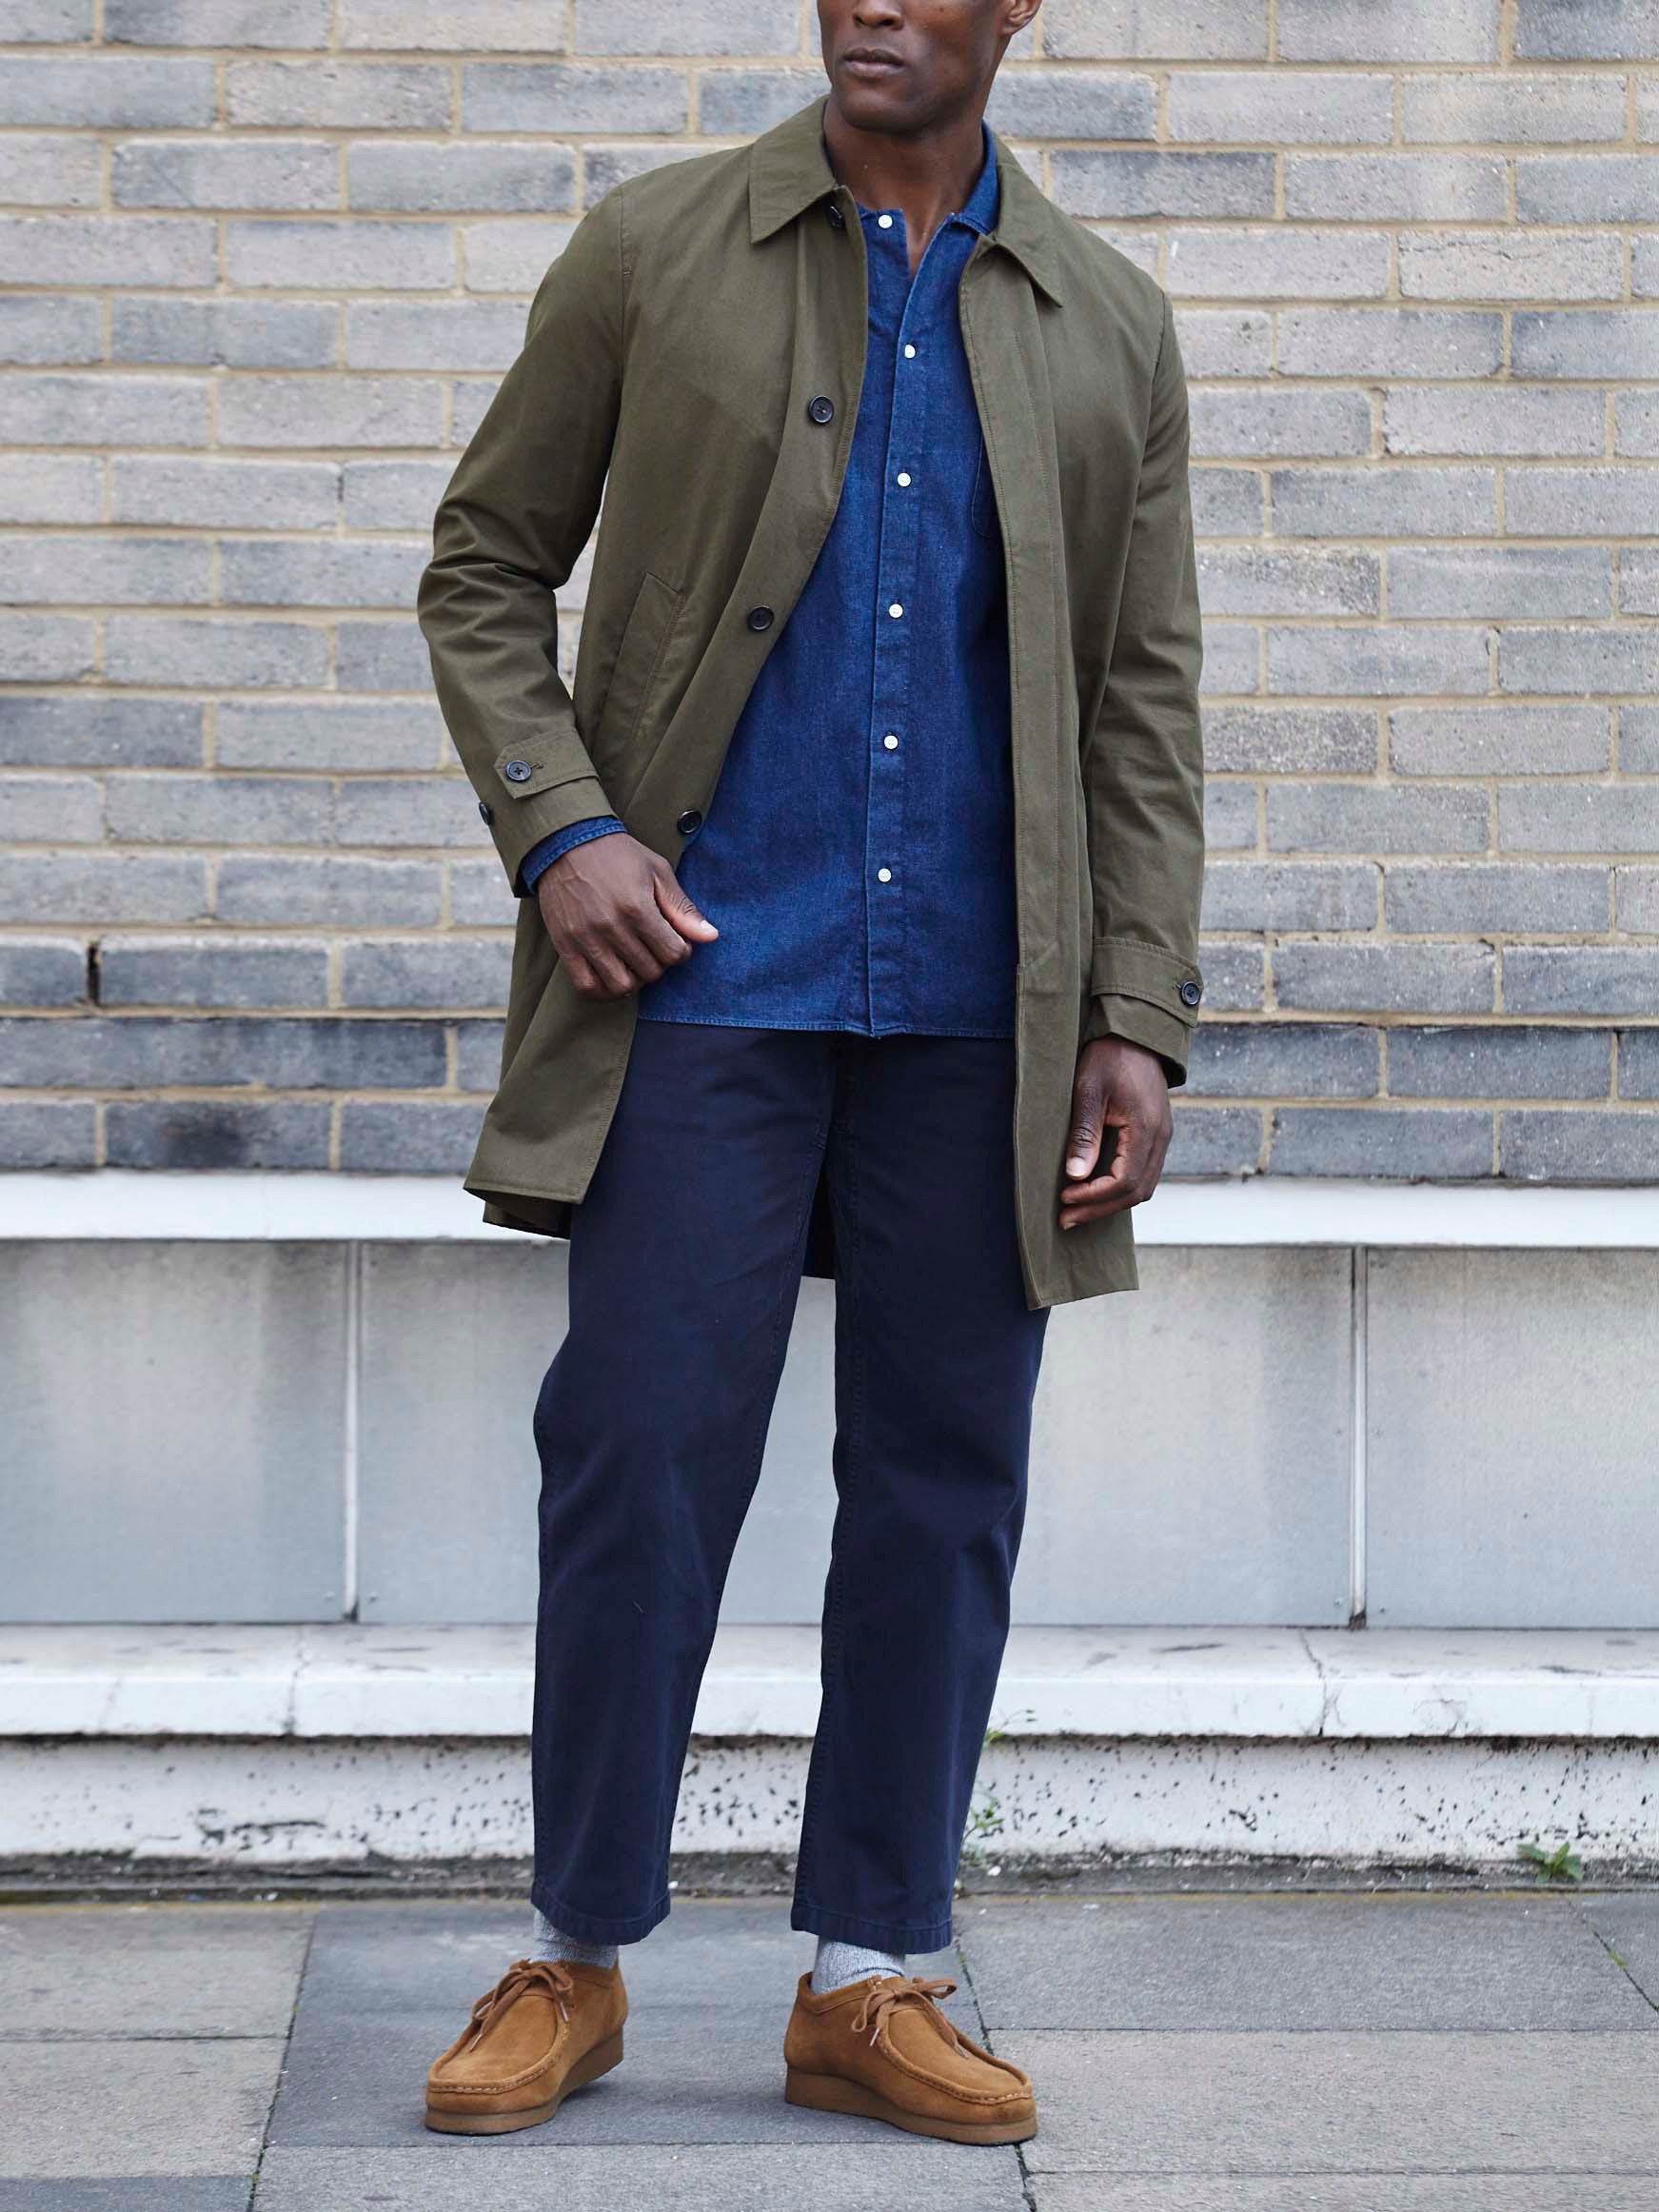 Men's outfit idea for 2021 with stone trench coat, denim shirt, navy chinos, neutral moccasins / wallabees. Suitable for spring and fall.